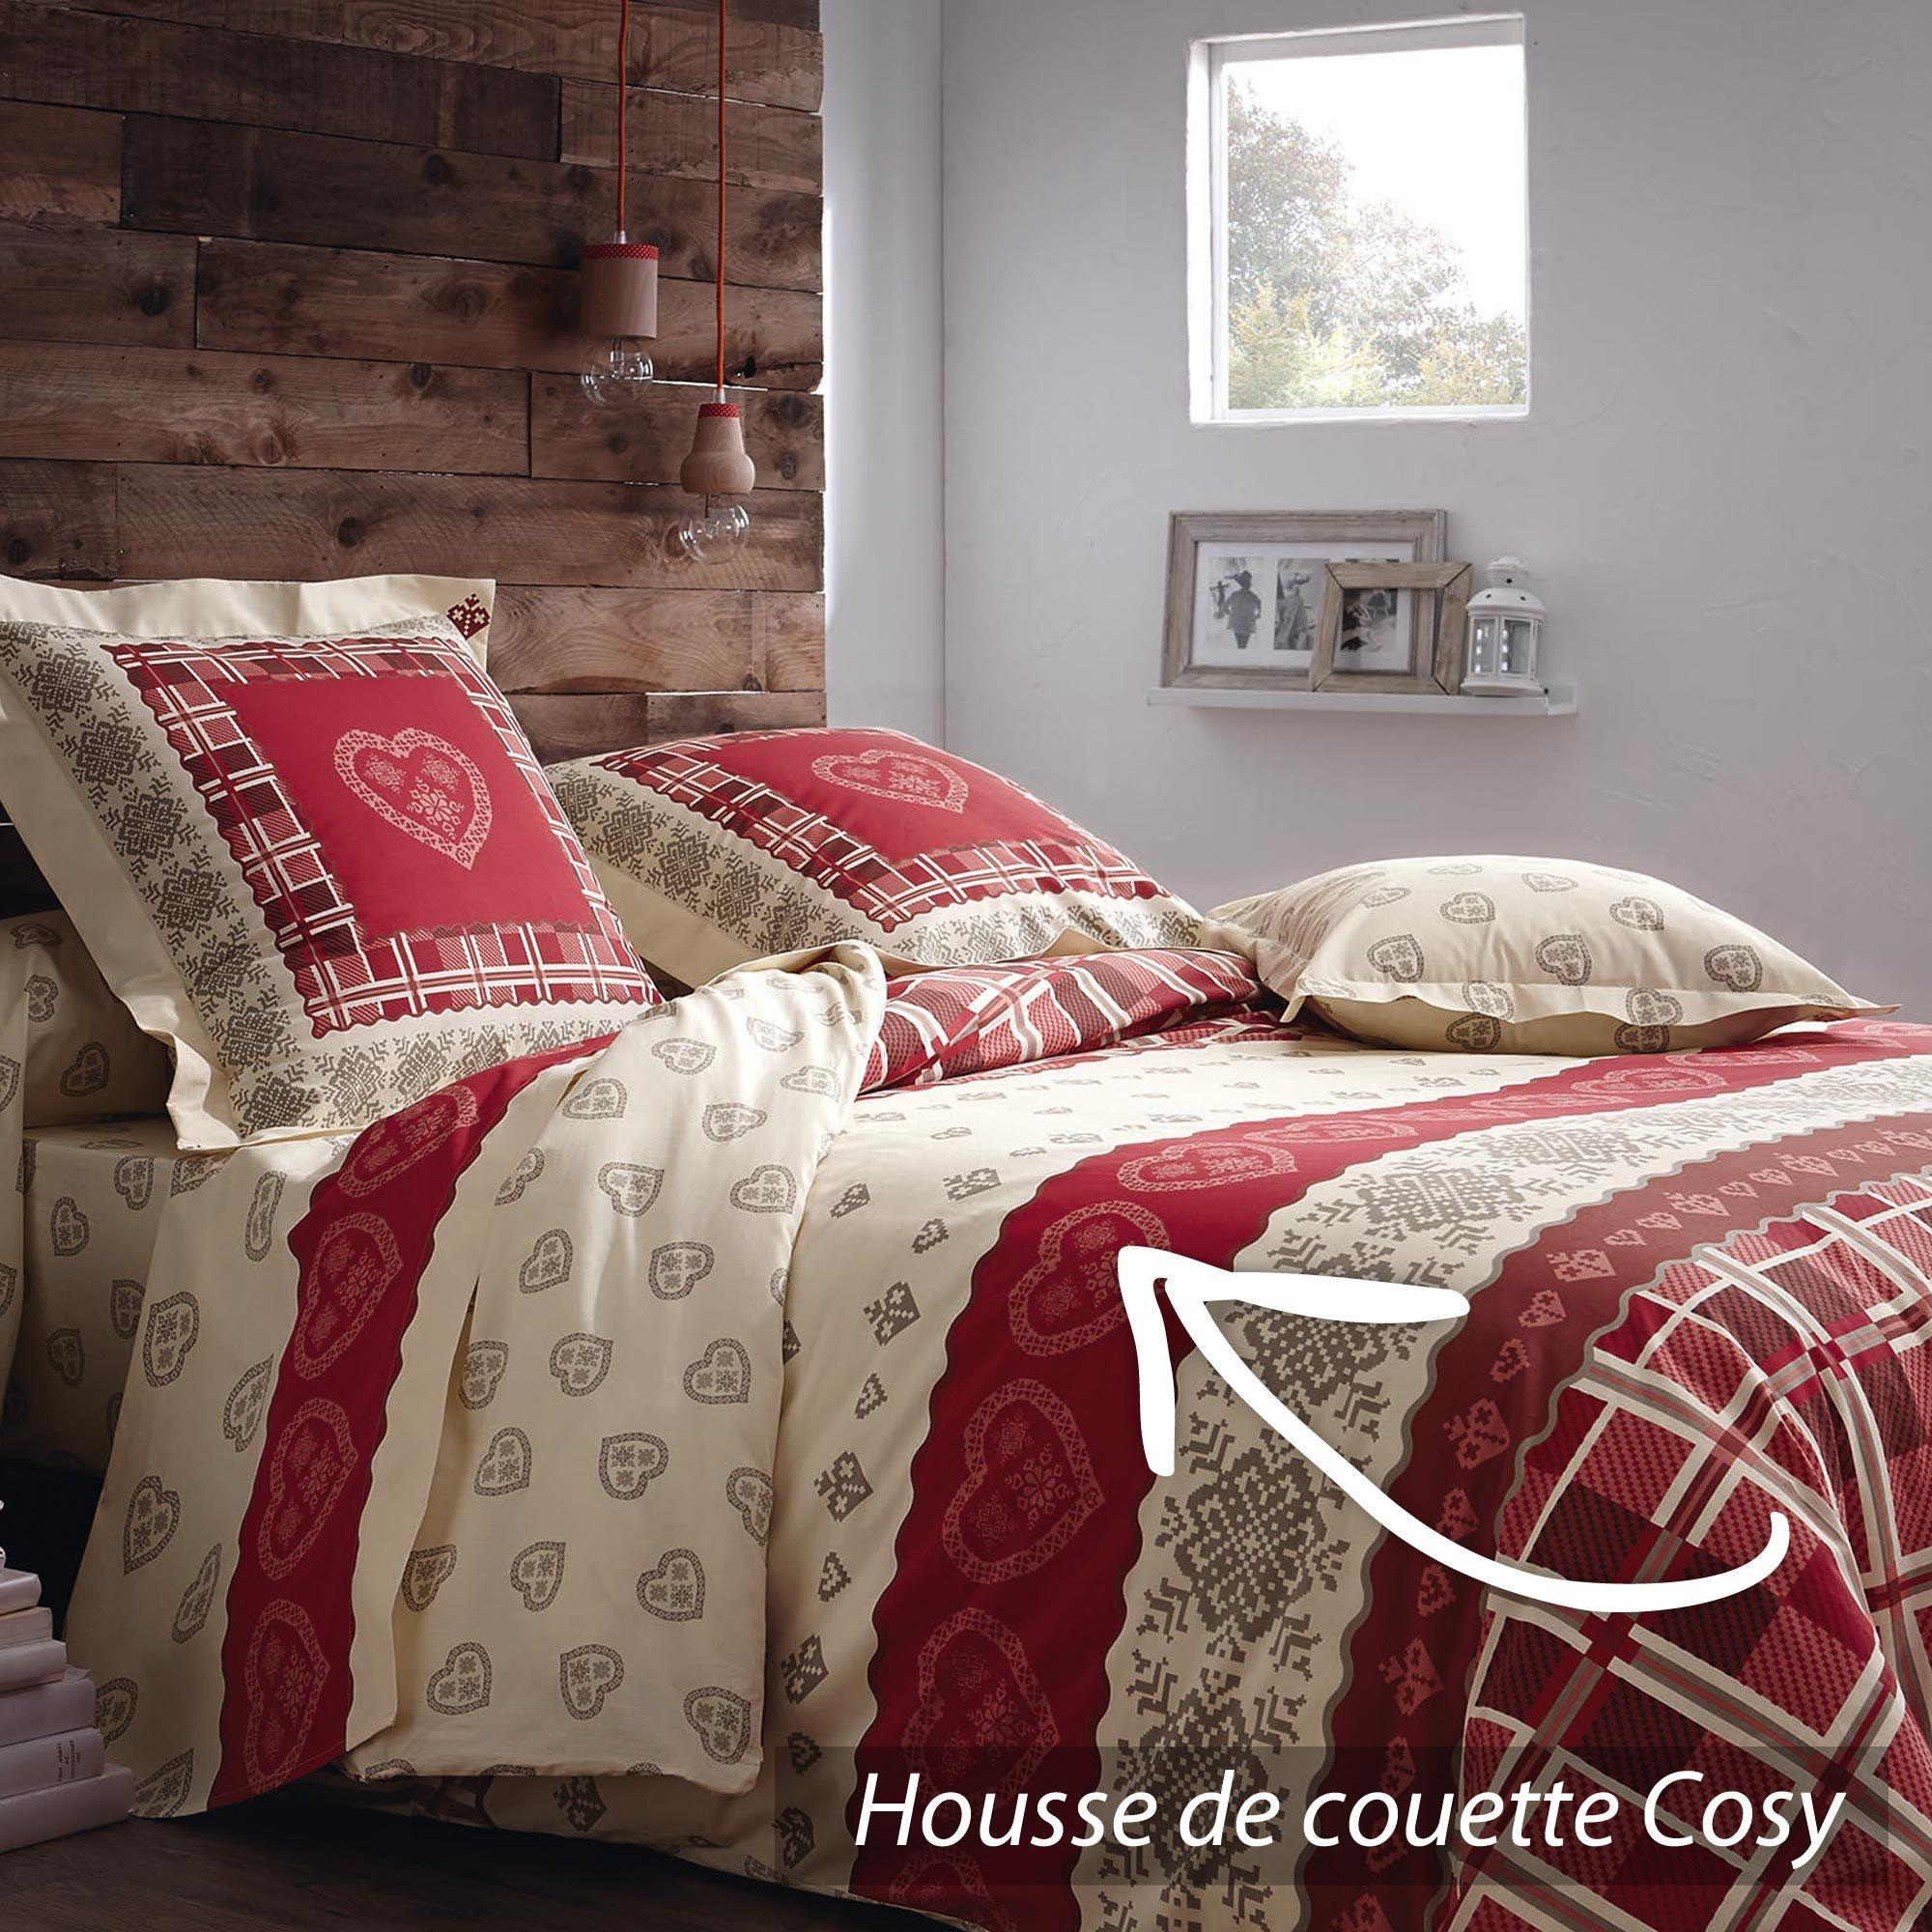 Housse guide d 39 achat for Housse couette vache